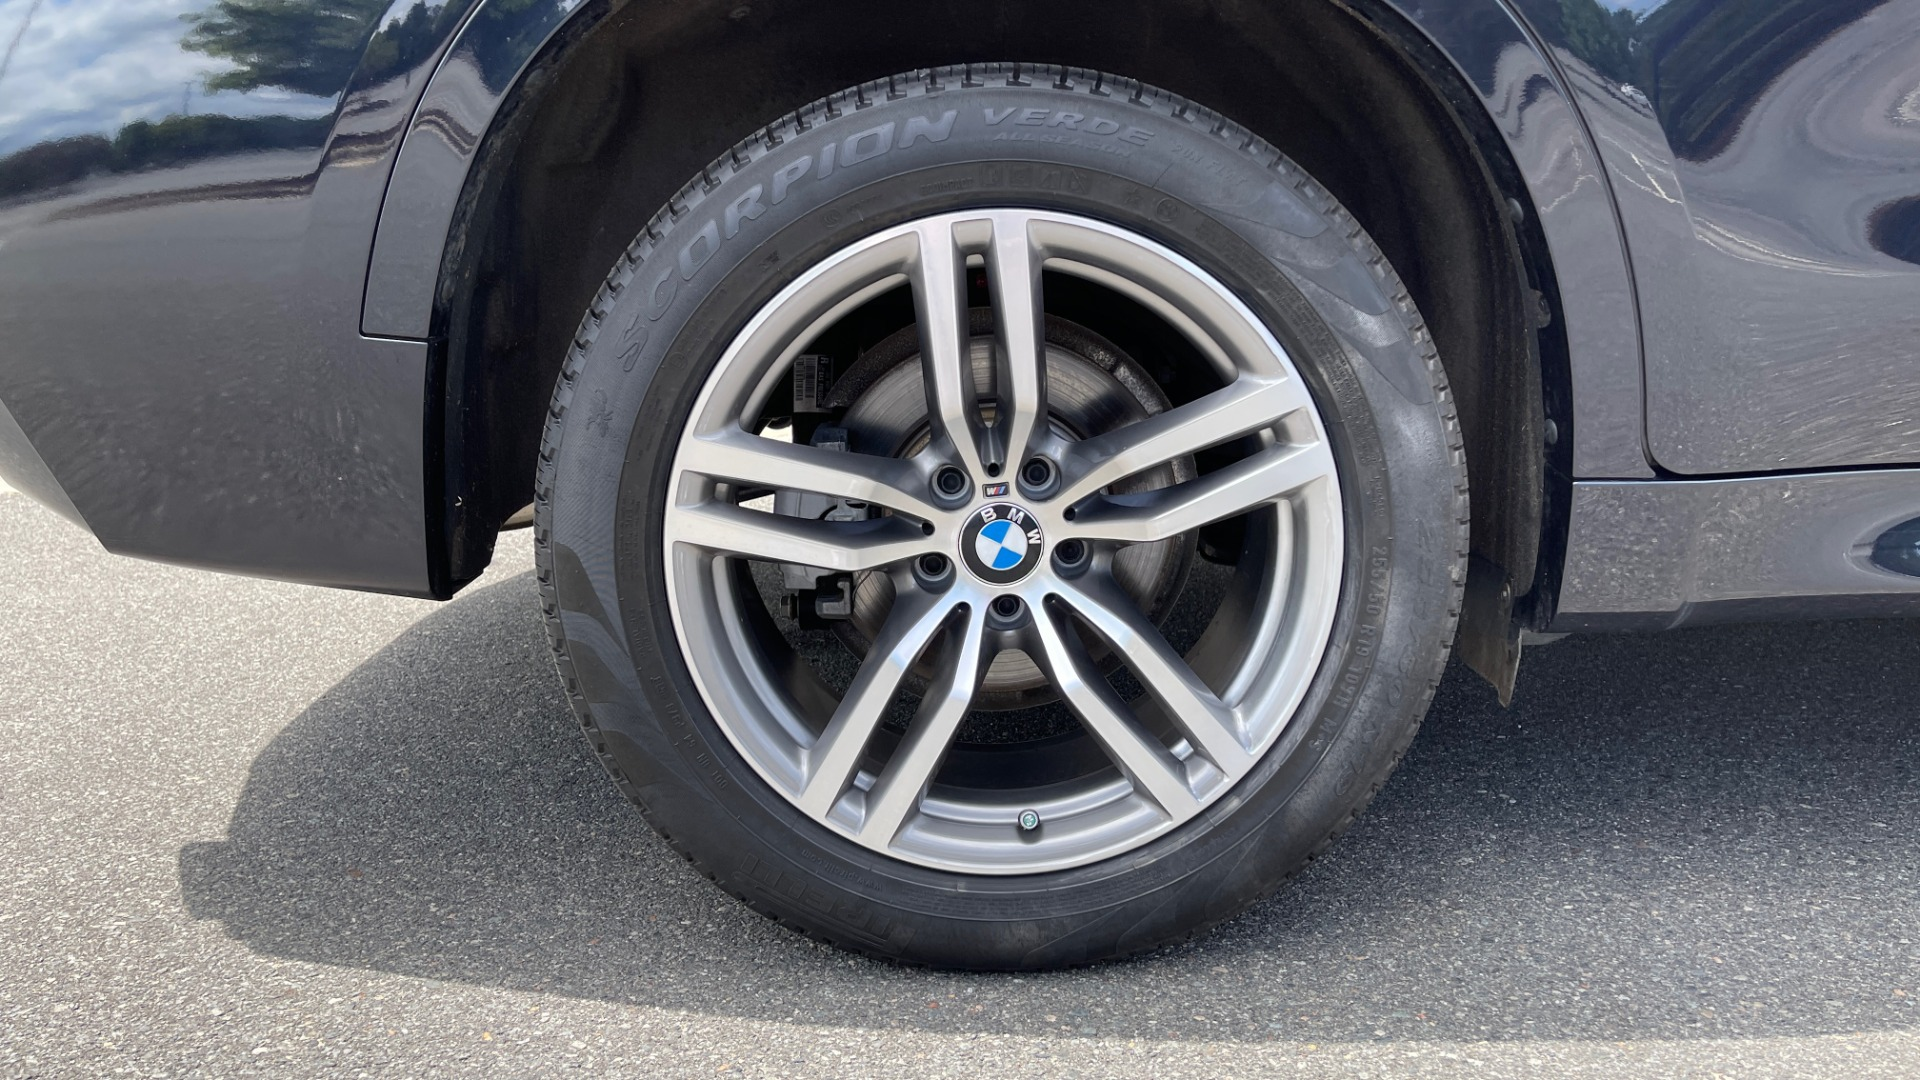 Used 2018 BMW X6 XDRIVE35I M-SPORT / DRVR ASST / PRK ASST / H/K SND / APPLE / WIRELESS CHARG for sale $51,995 at Formula Imports in Charlotte NC 28227 71